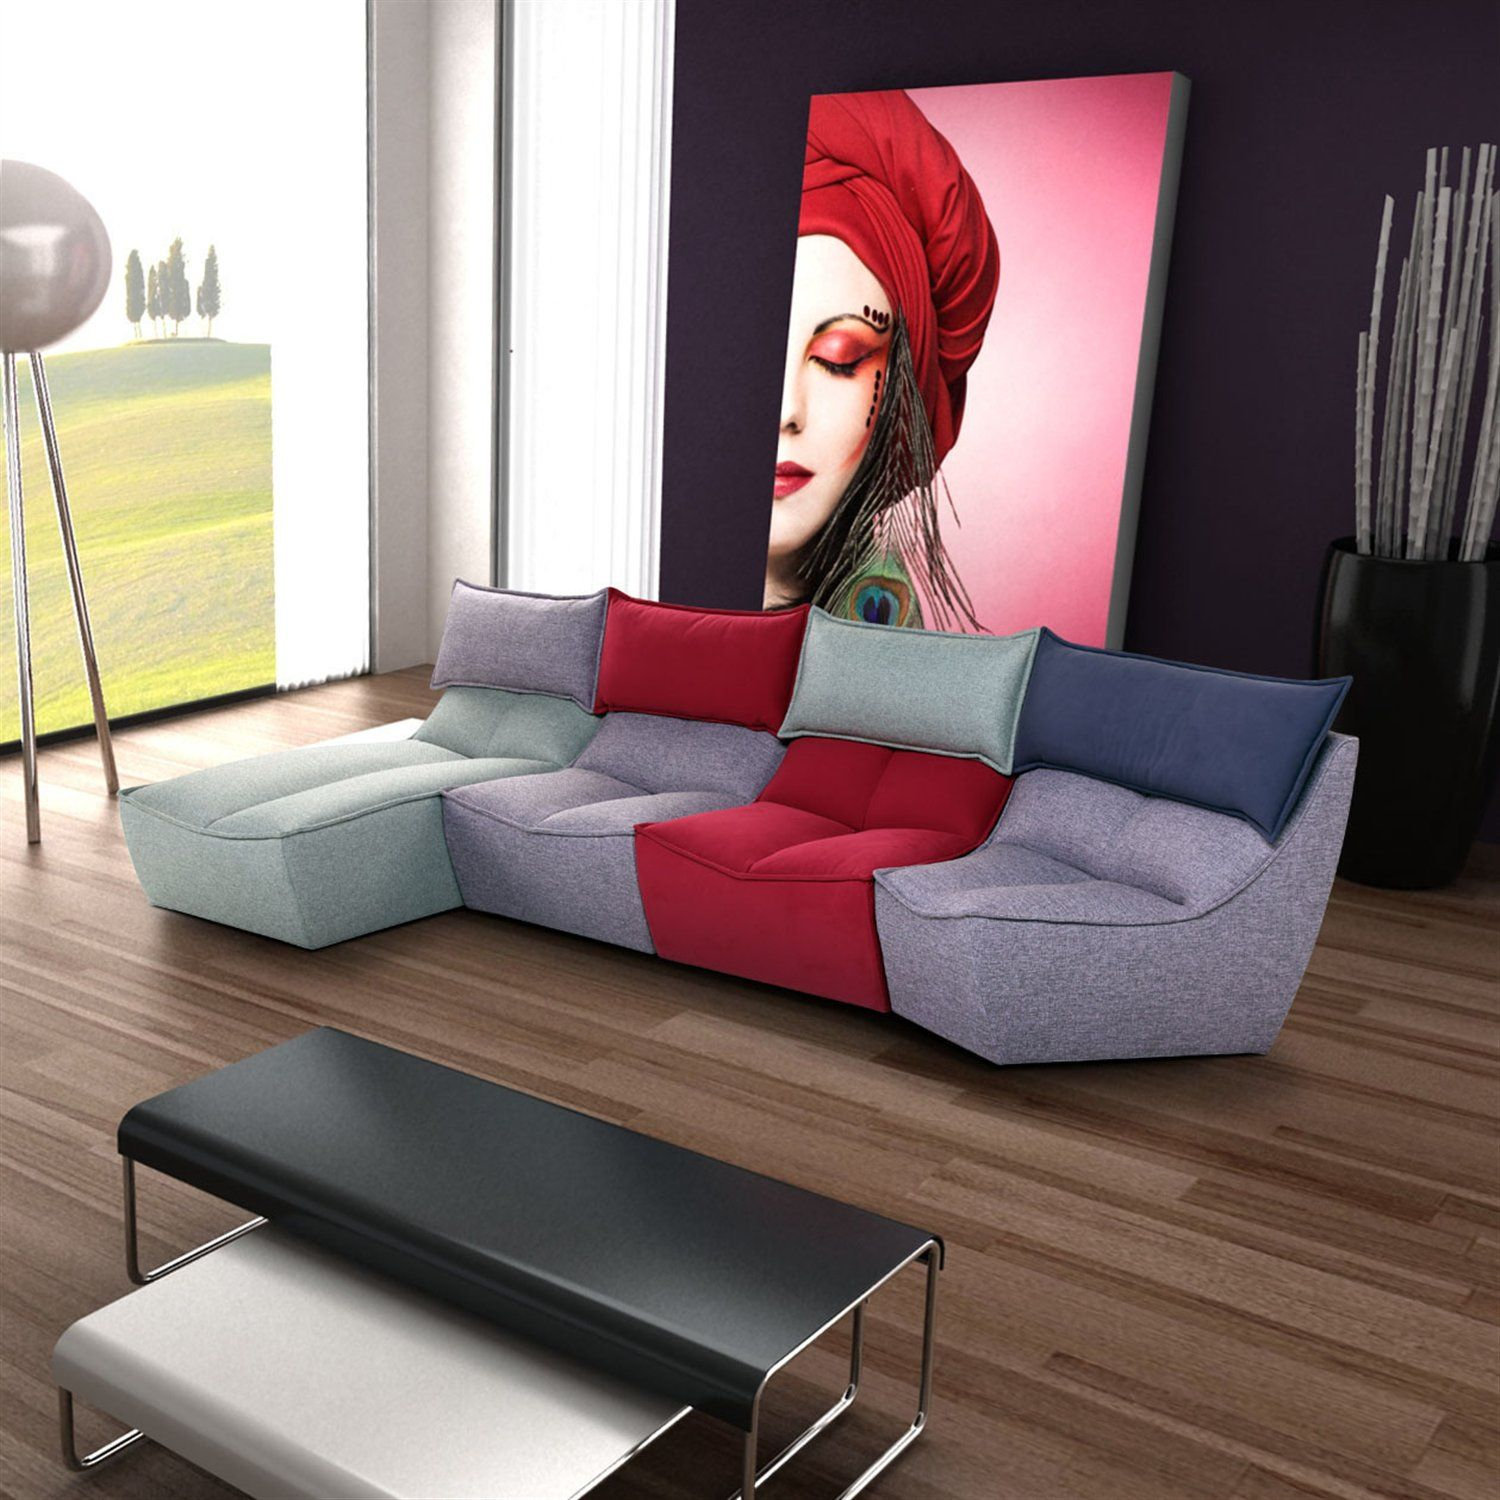 Hip Hop Modular Sofa By Calia Italia Sofa Design Sofas Innenarchitektur